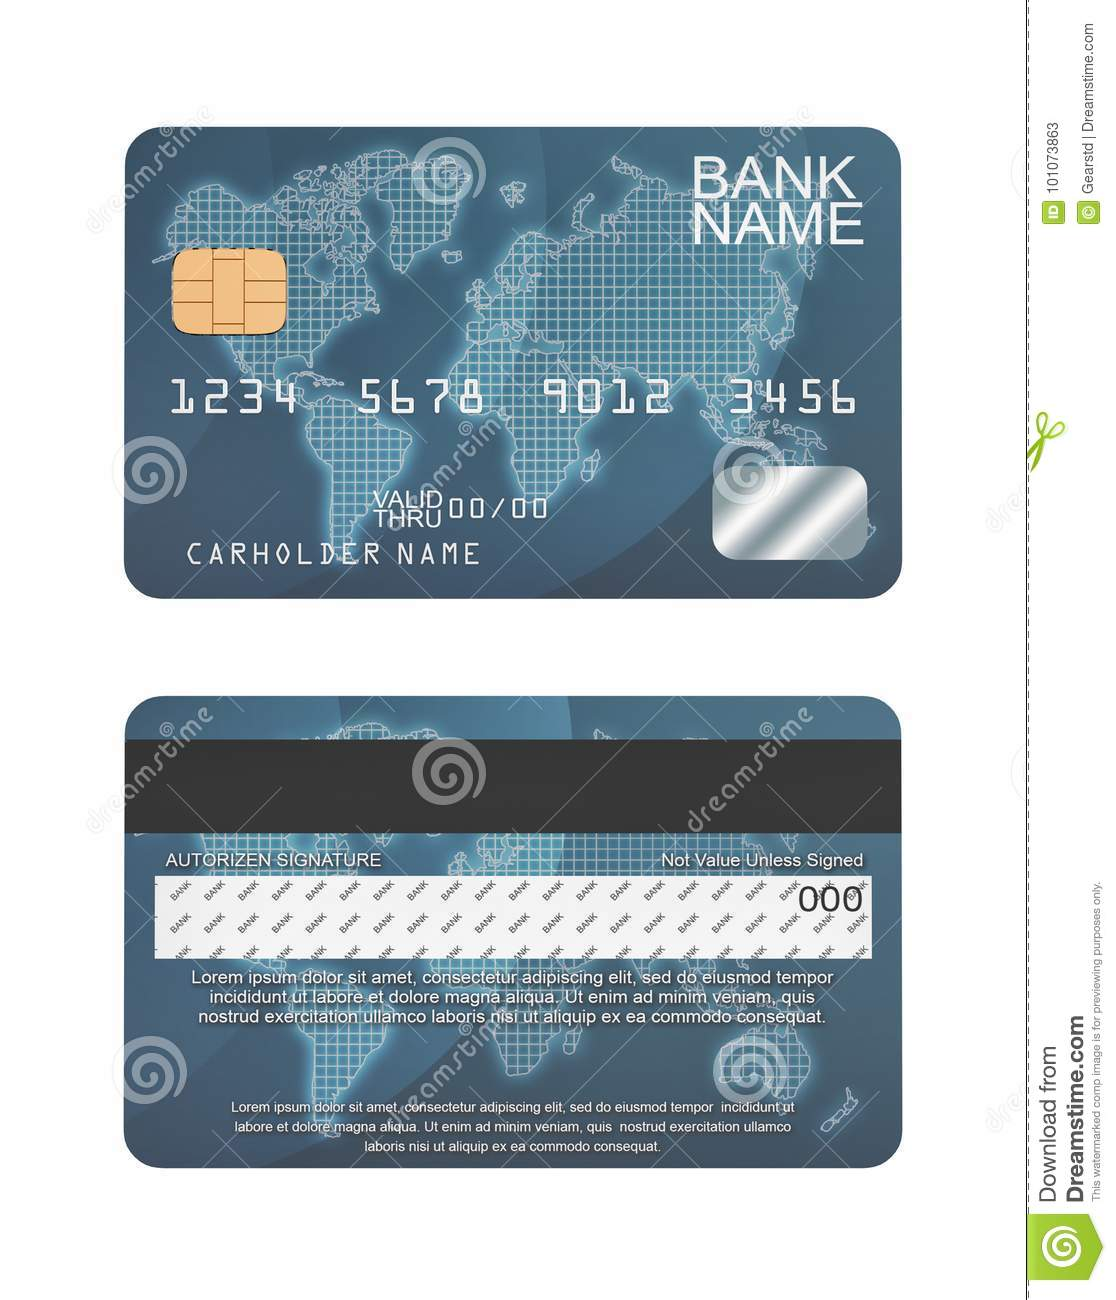 7d Rendering Of A Generic Credit Card In Blue Color And Random